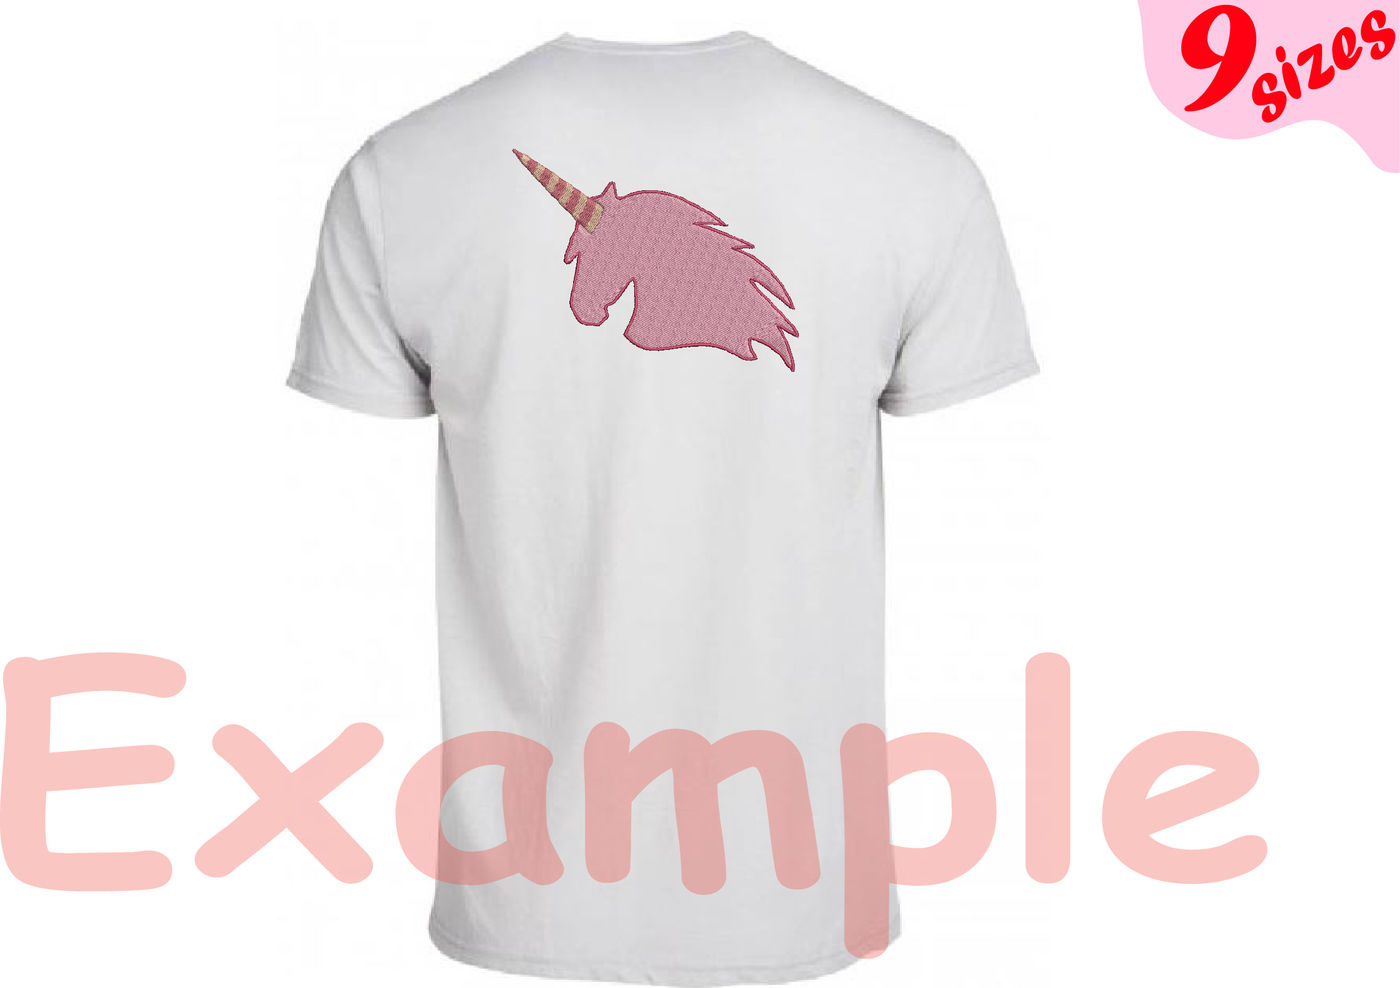 Unicorn Embroidery Design Machine Instant Download Commercial Use